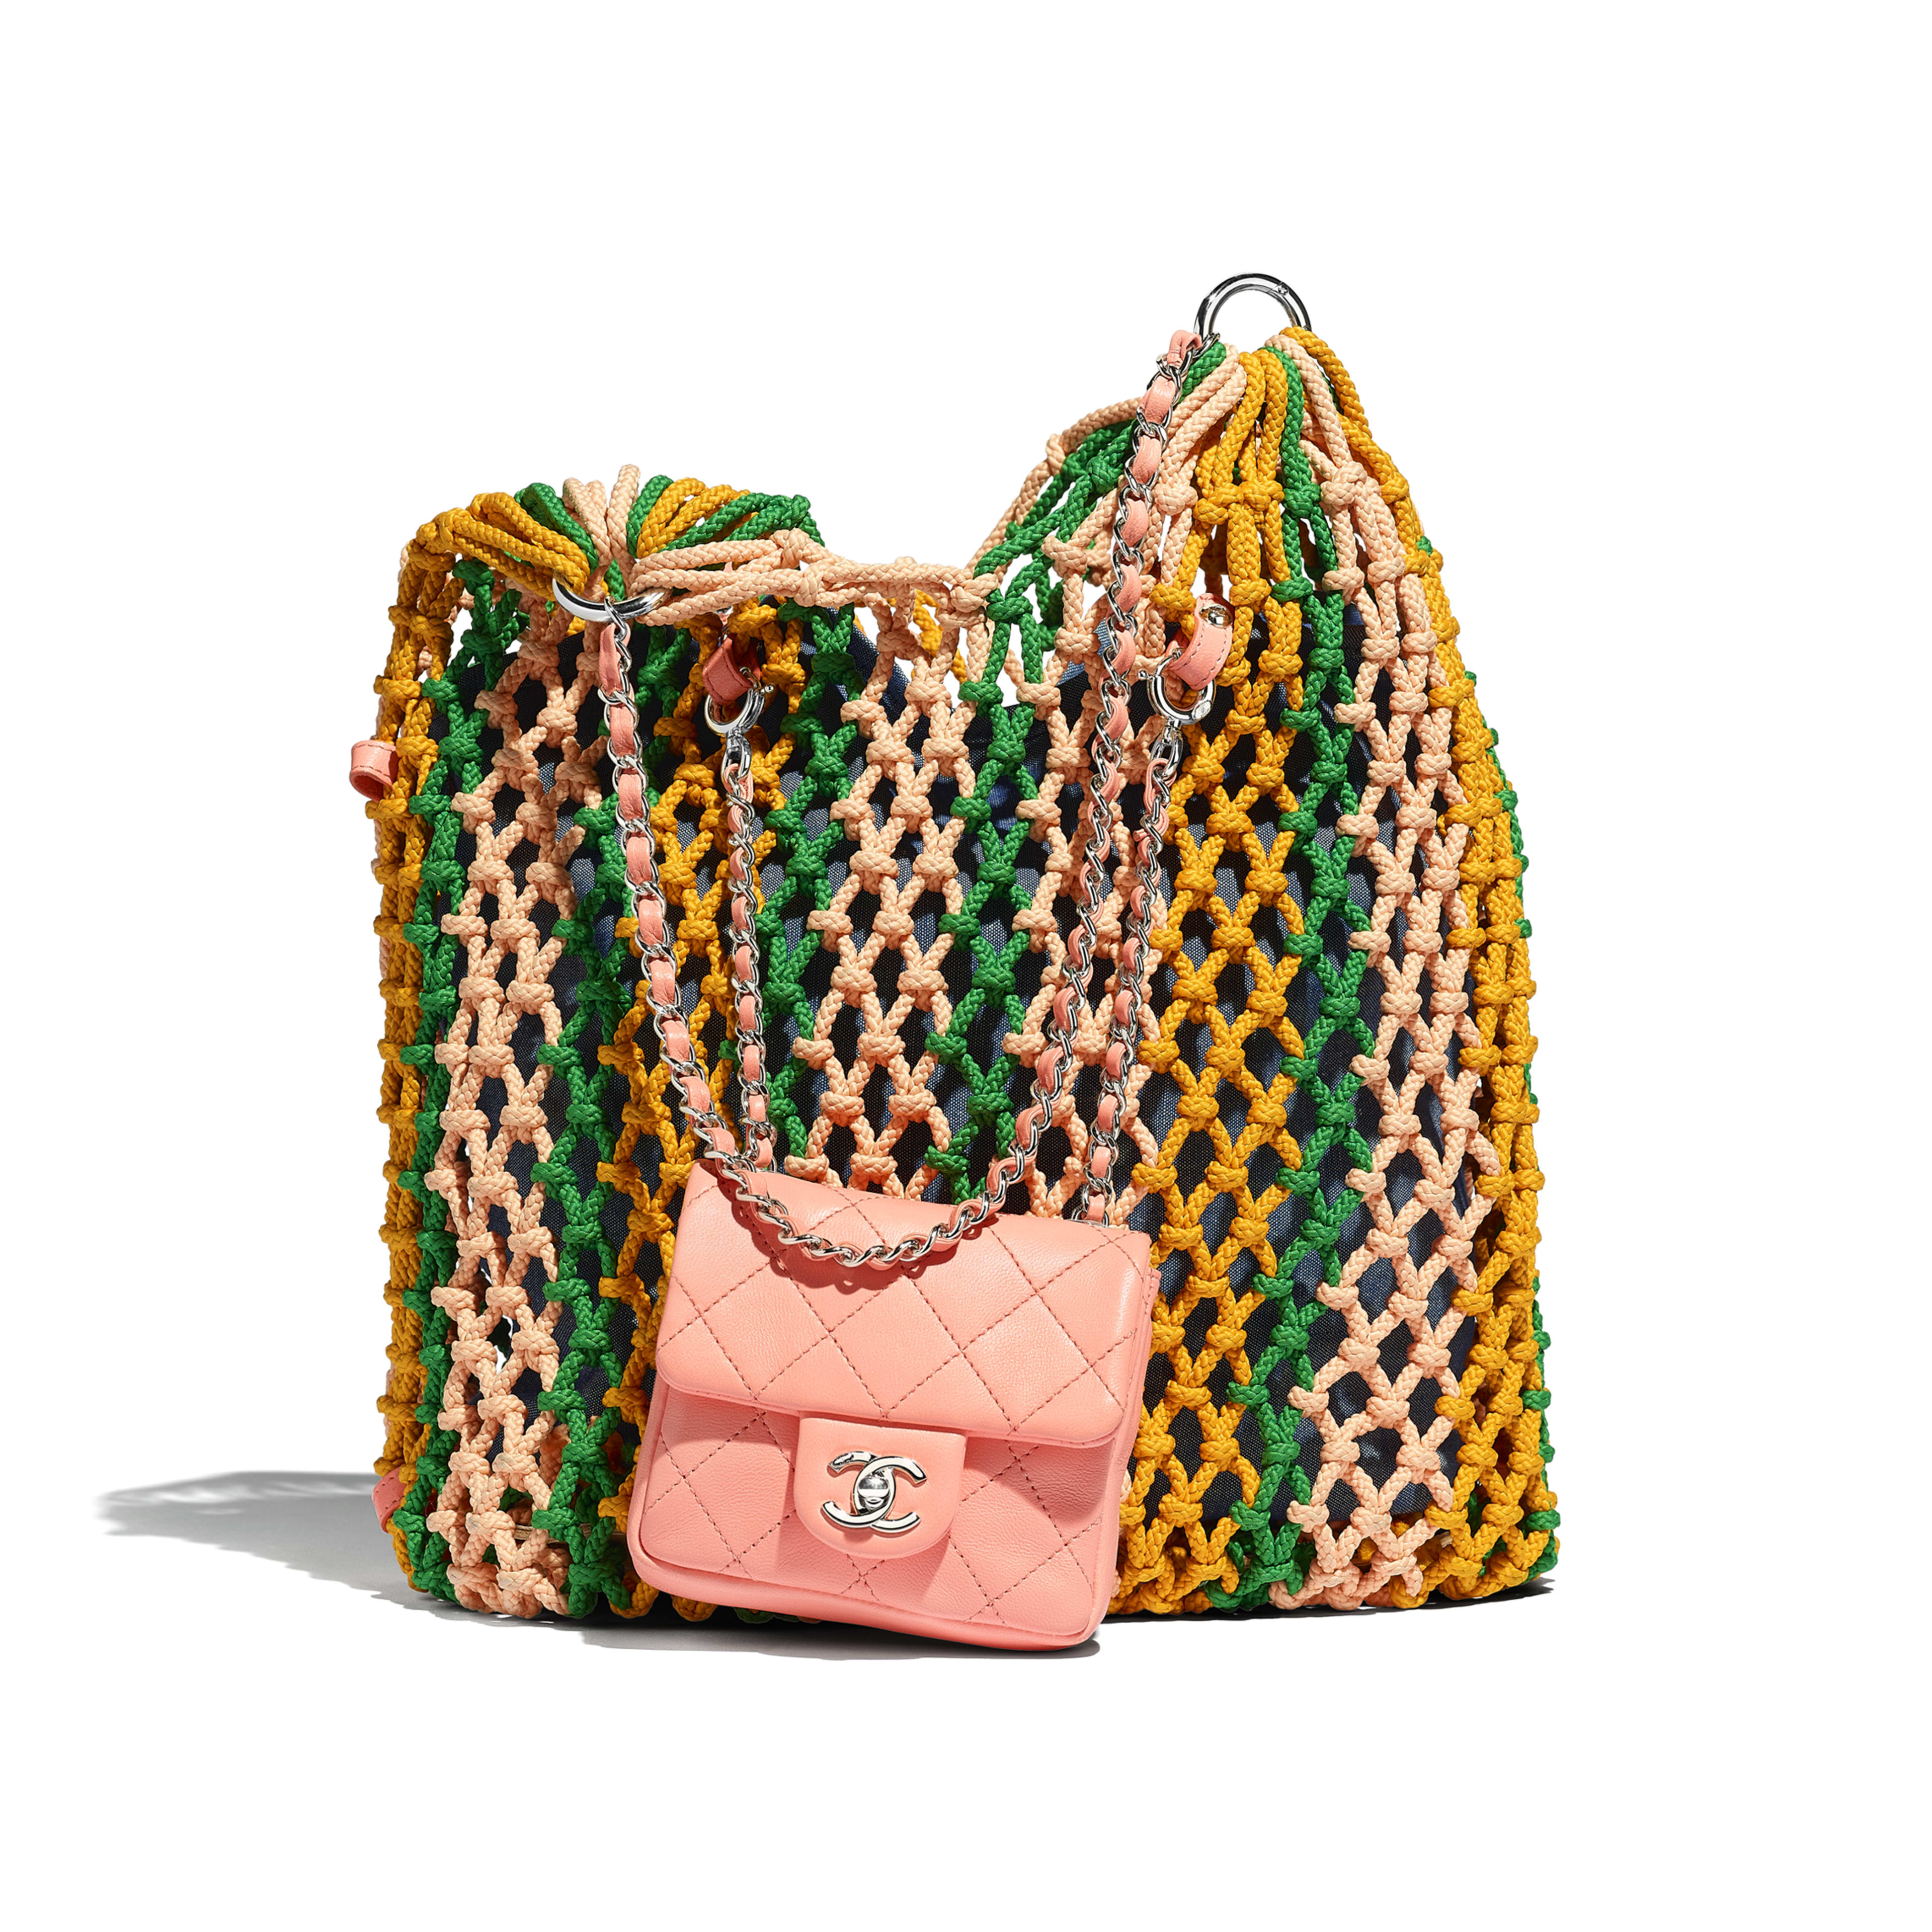 Large Shopping Bag - Green, Orange & Pink - Mixed Fibers, Lambskin & Silver-Tone Metal - Default view - see full sized version